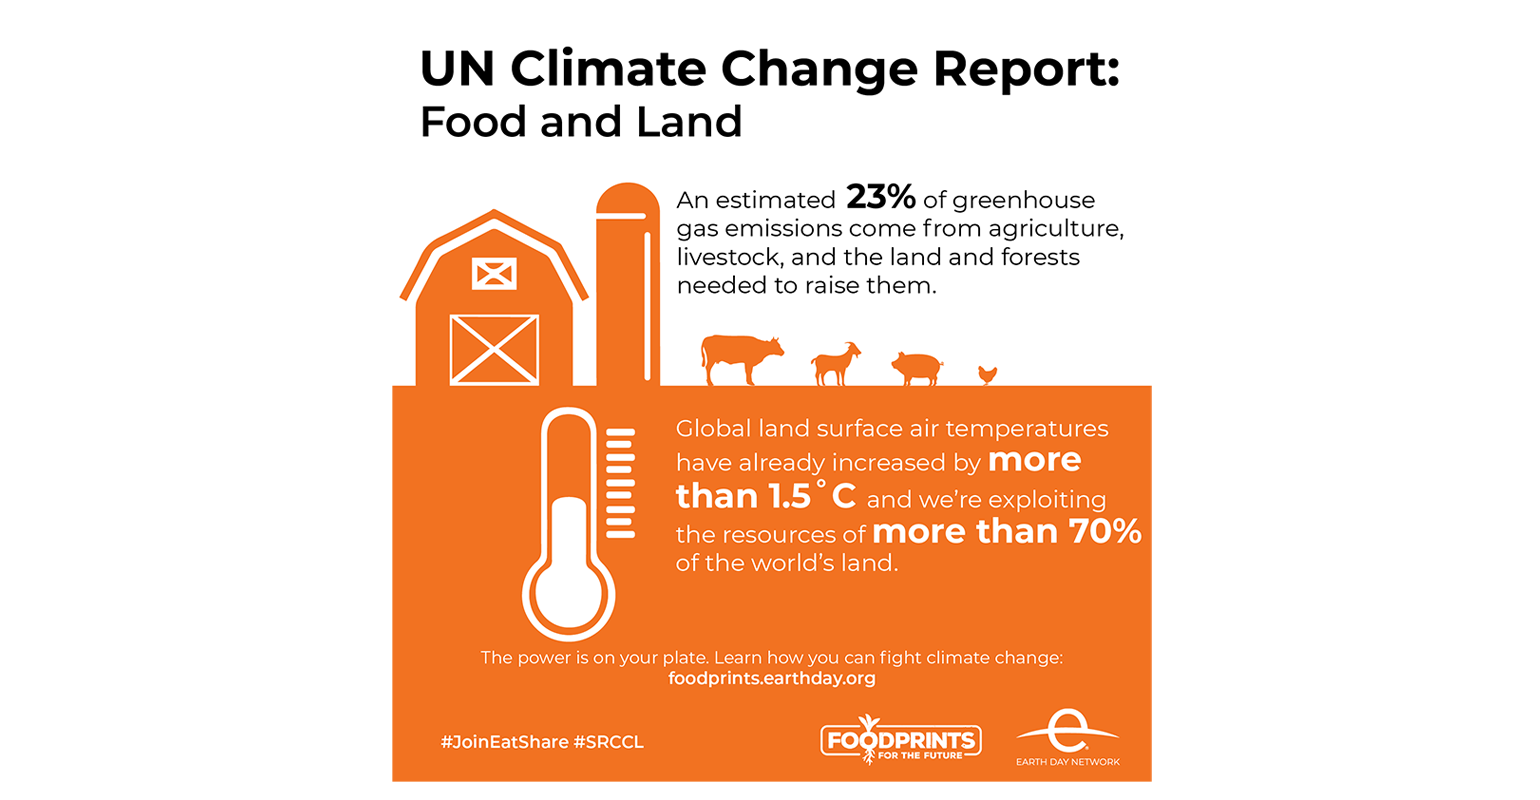 The food system is responsible for about one-third of global greenhouse gas emissions